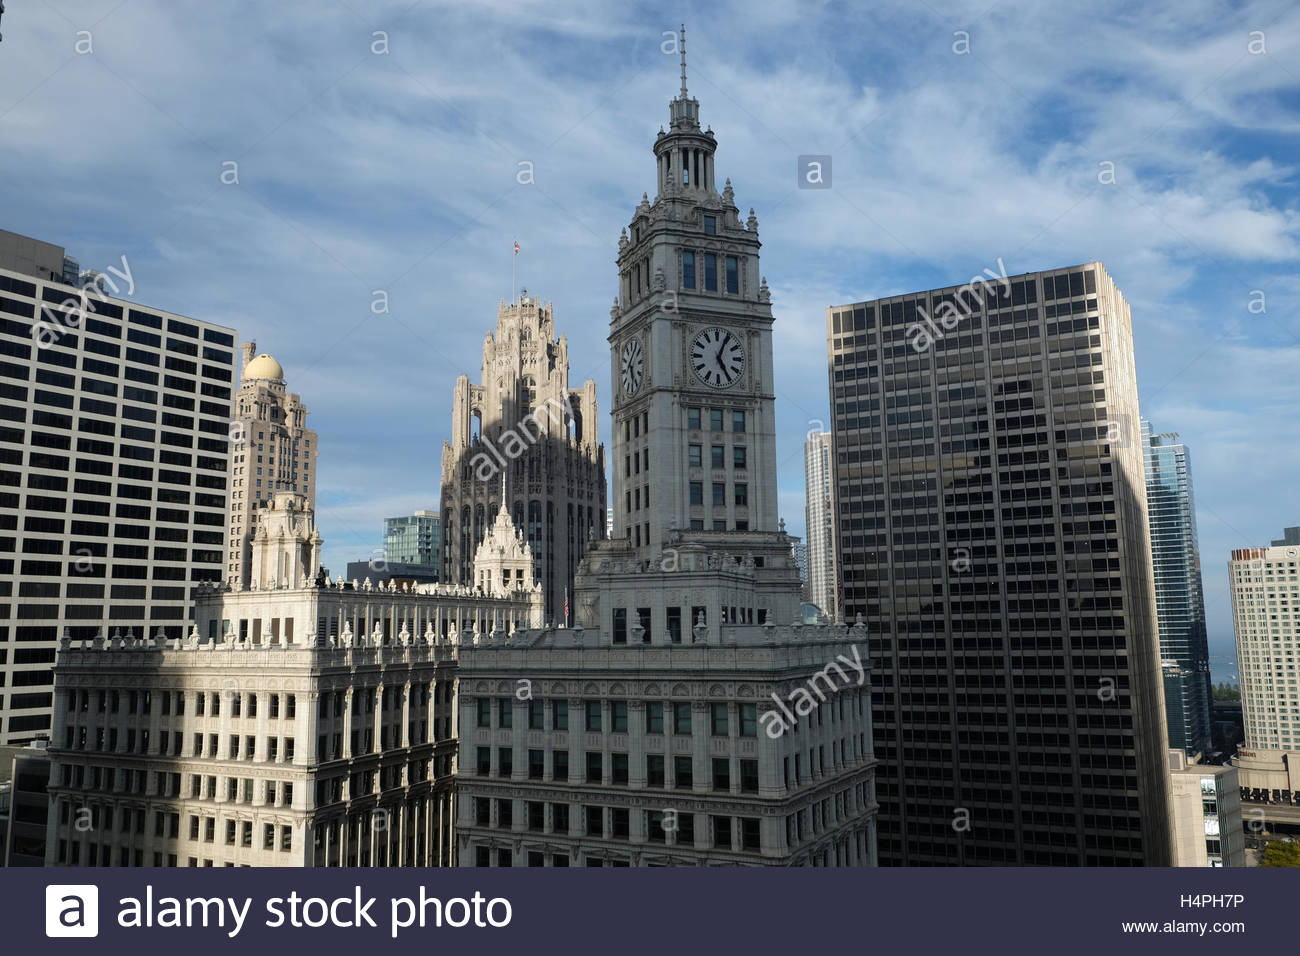 The clock tower of the Wrigley Building. - Stock Image